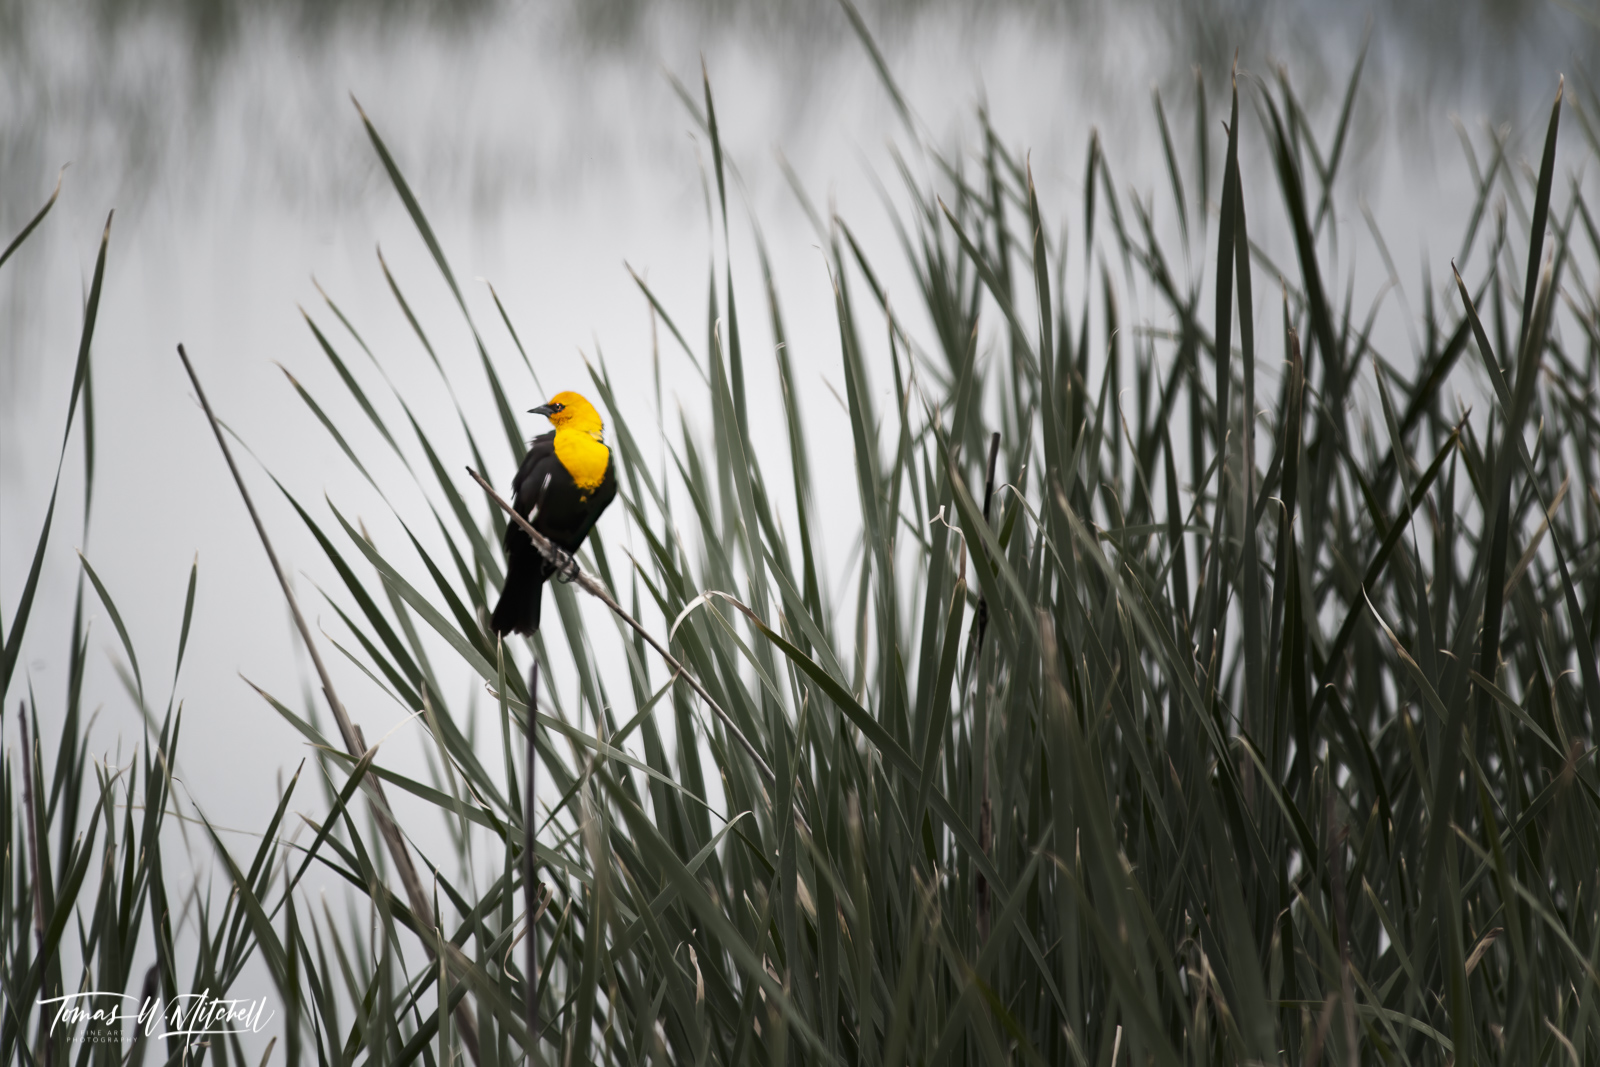 limited edition, fine art, prints, photograph, yellow-headed black bird, Xanthocephalus, birds, cattail, leaves, bear river bird refuge, utah, photo